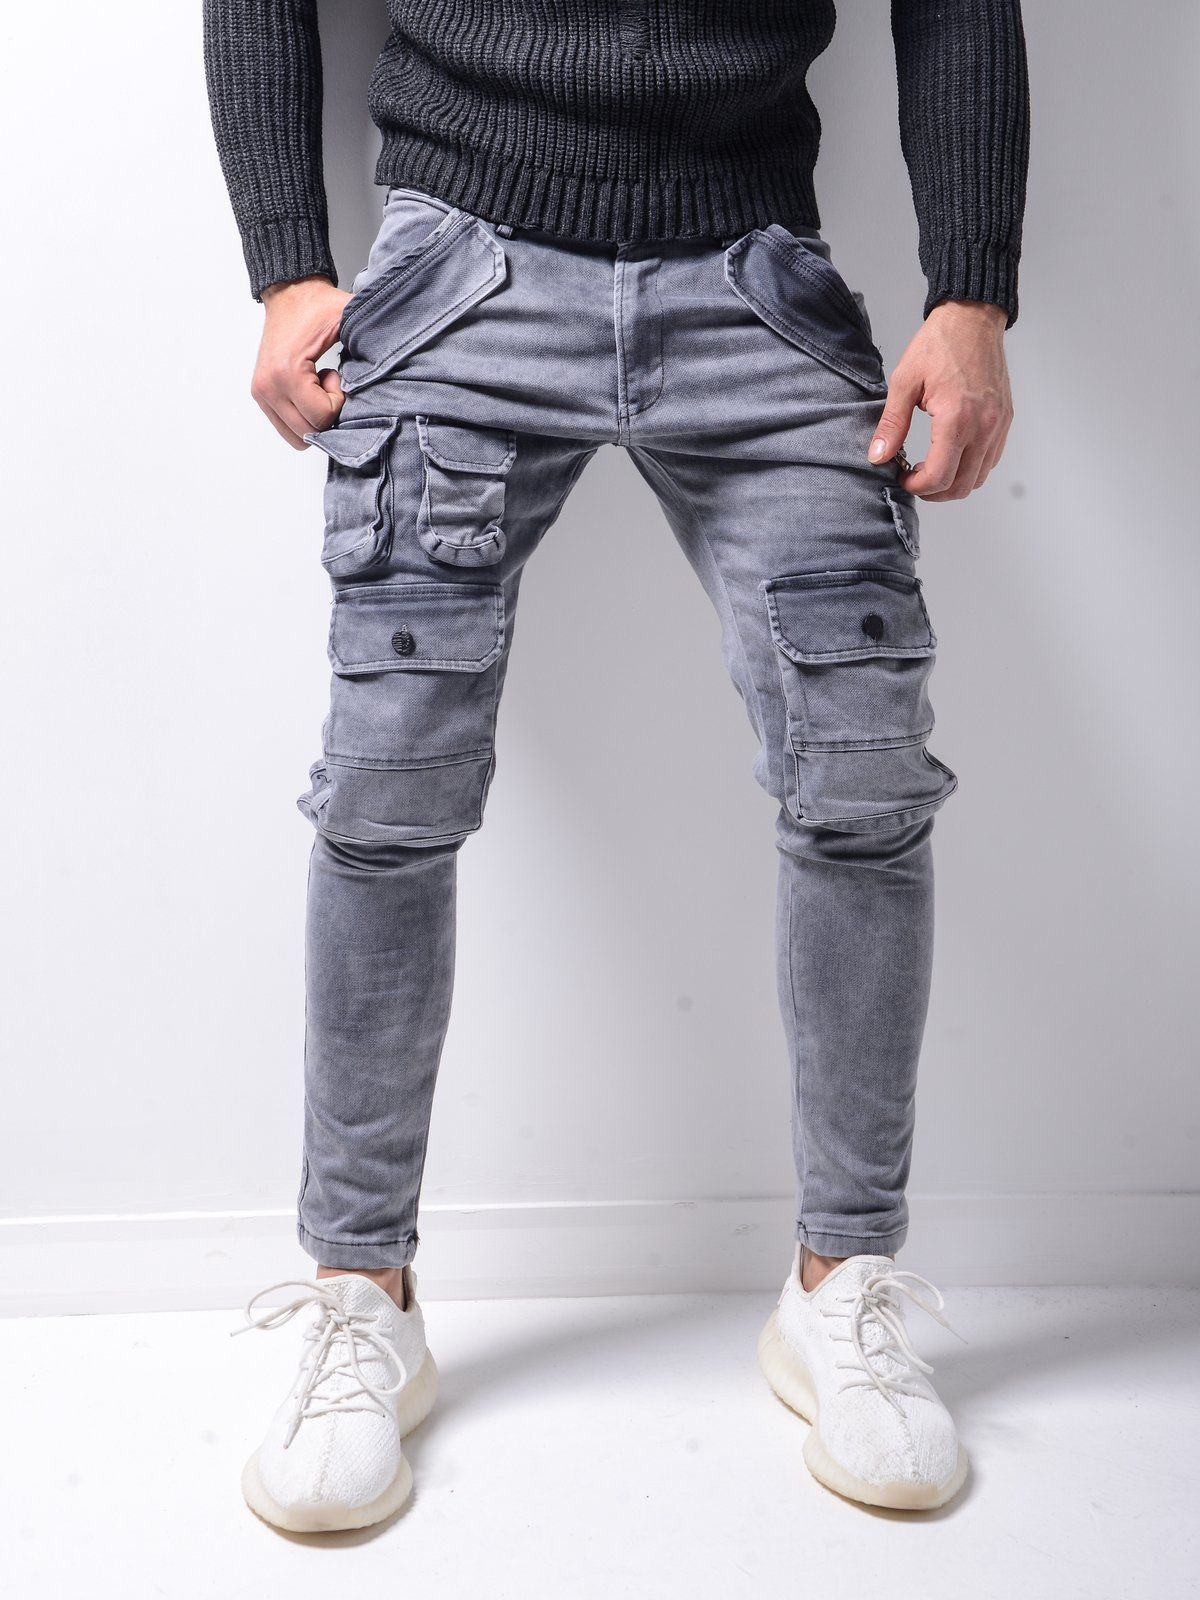 Super Cargo Jeans Washed Gray 4601 Fash Stop In 2020 Cargo Pants Outfit Men Pants Outfit Men Cargo Pants Outfit